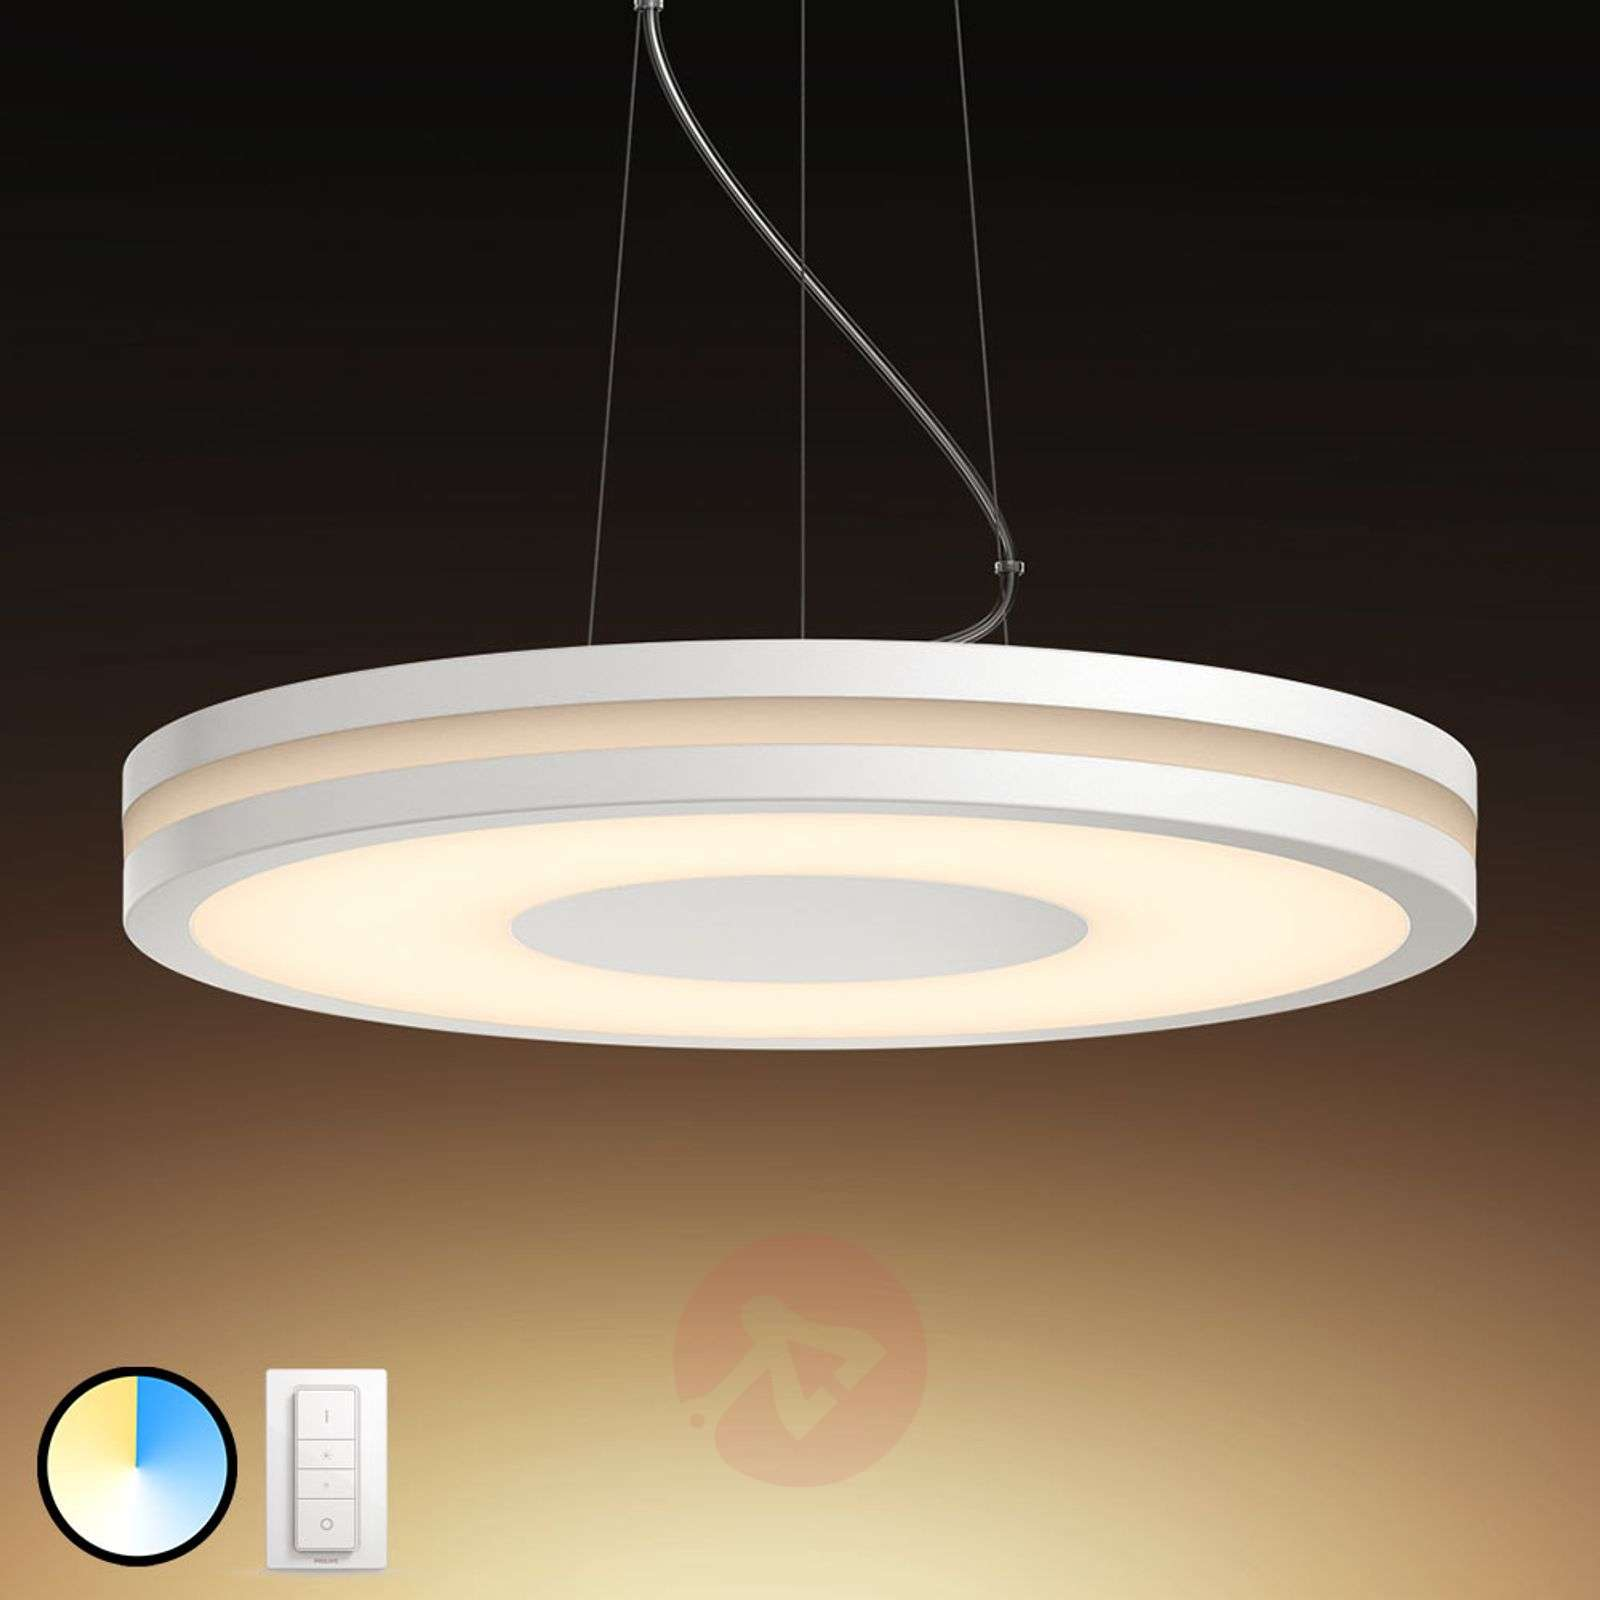 Plafoniere Quadrate Philips : Acquista philips hue being lampada a sospensione led dimmer